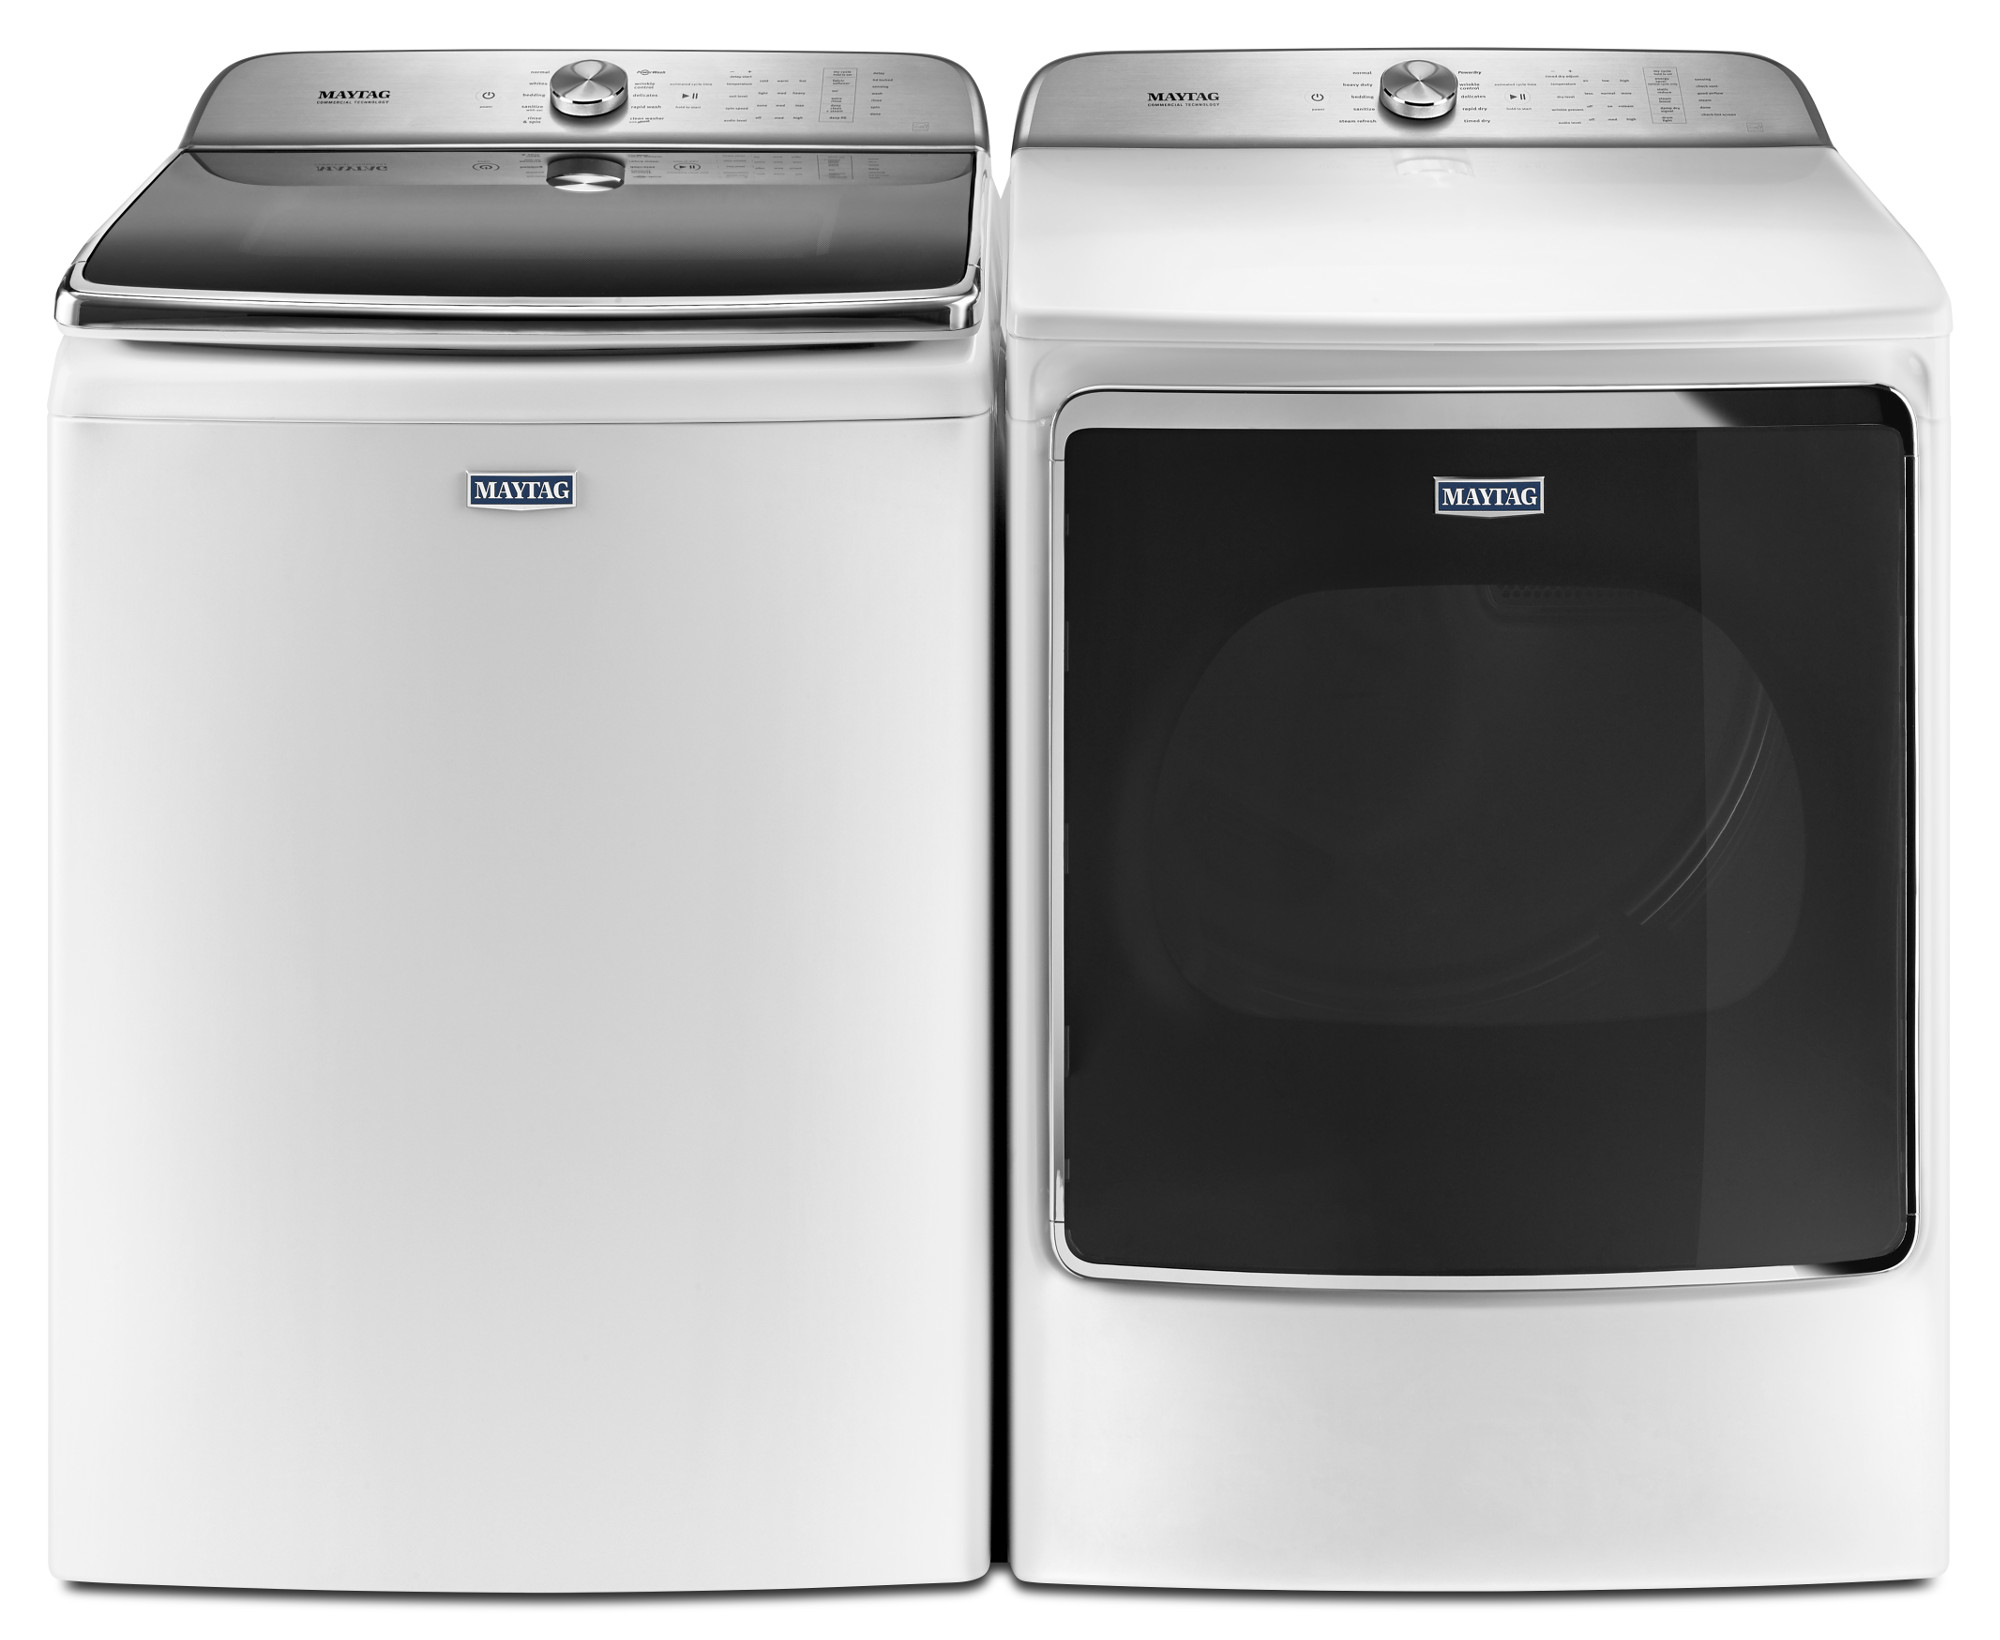 Maytag MVWB955FW 6.2  cu. ft. Top Load Washer w/ the PowerWash® System - White